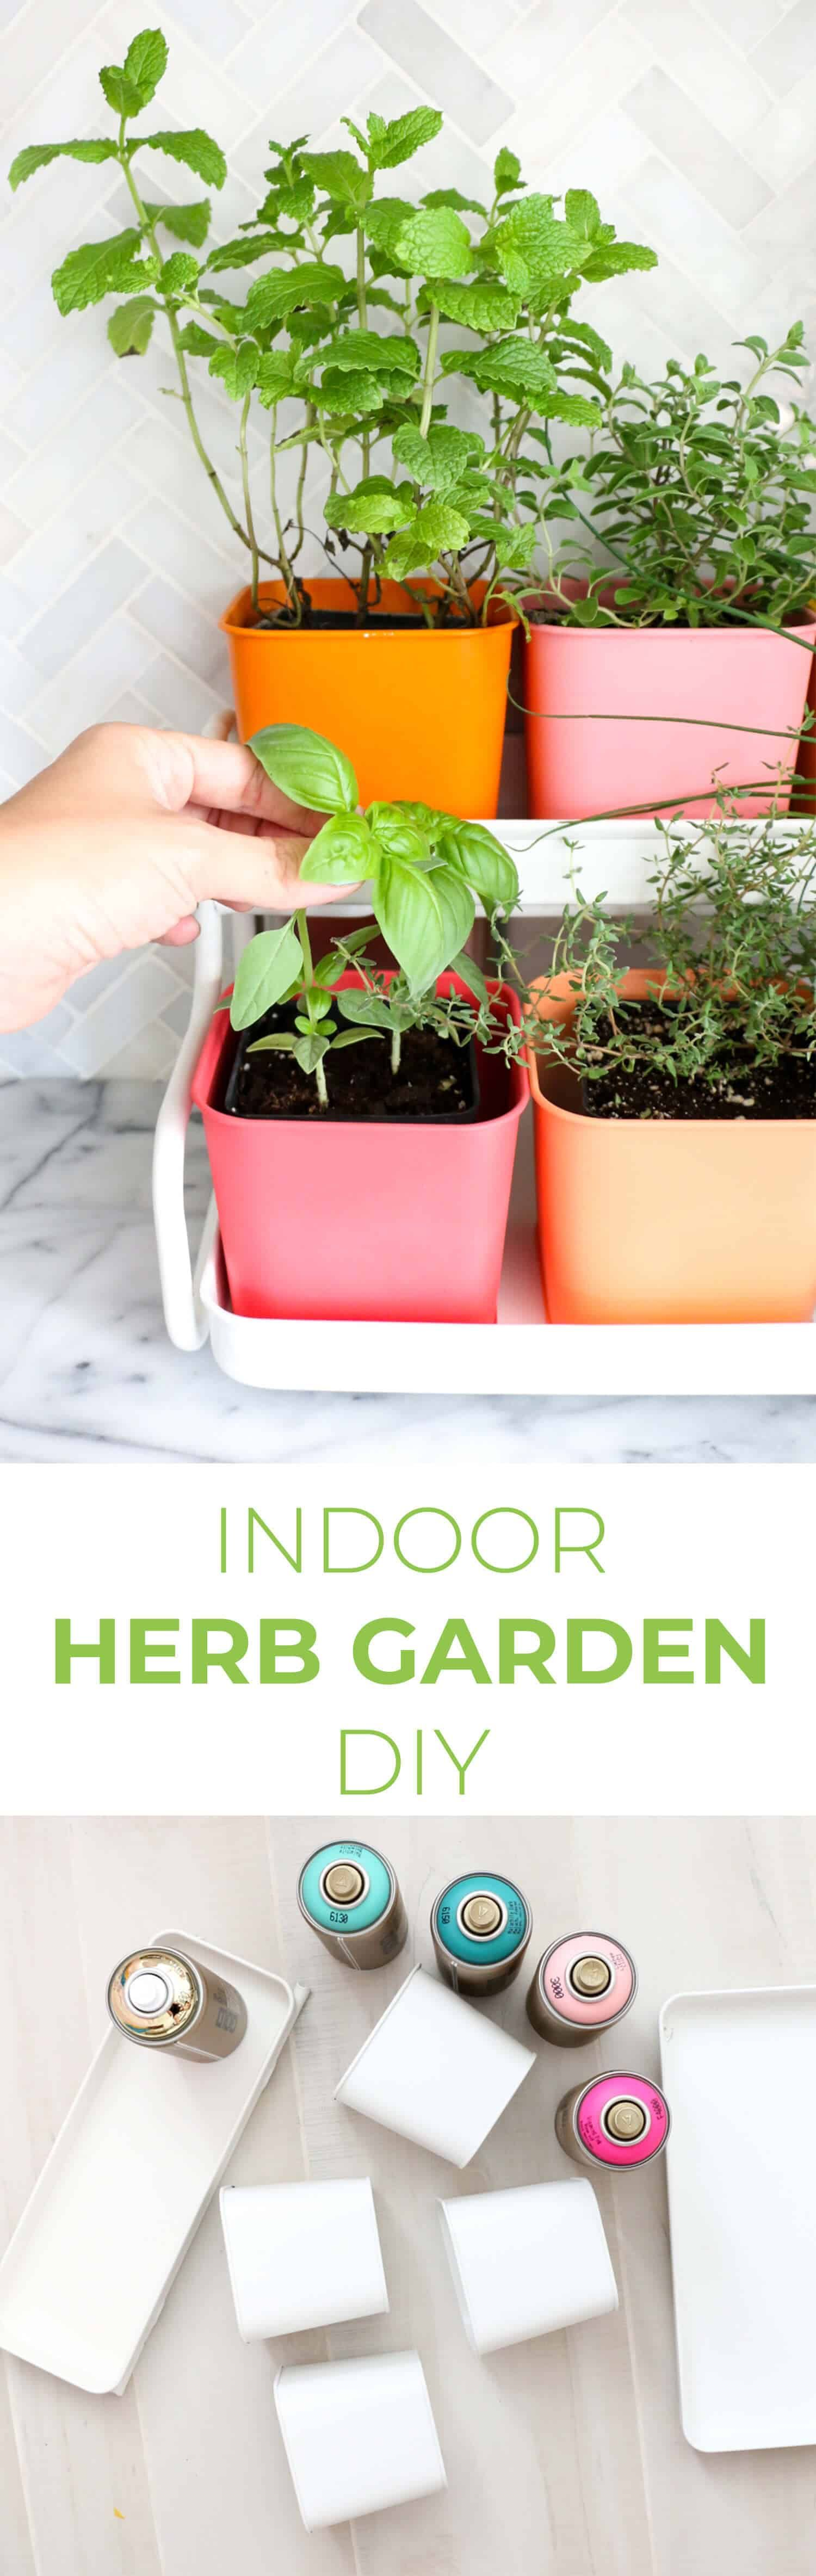 make a colorful indoor herb garden with images indoor on indoor herb garden diy wall mason jars id=53990